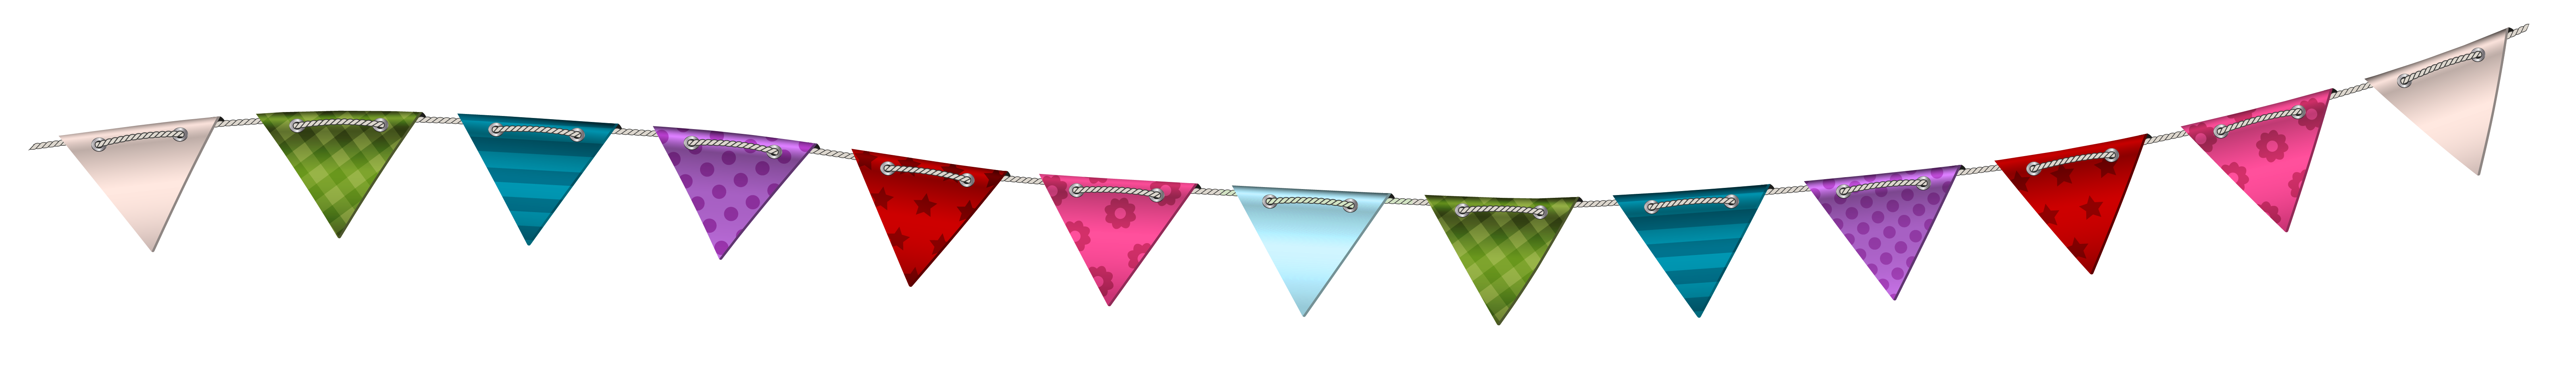 Party streamers clipart